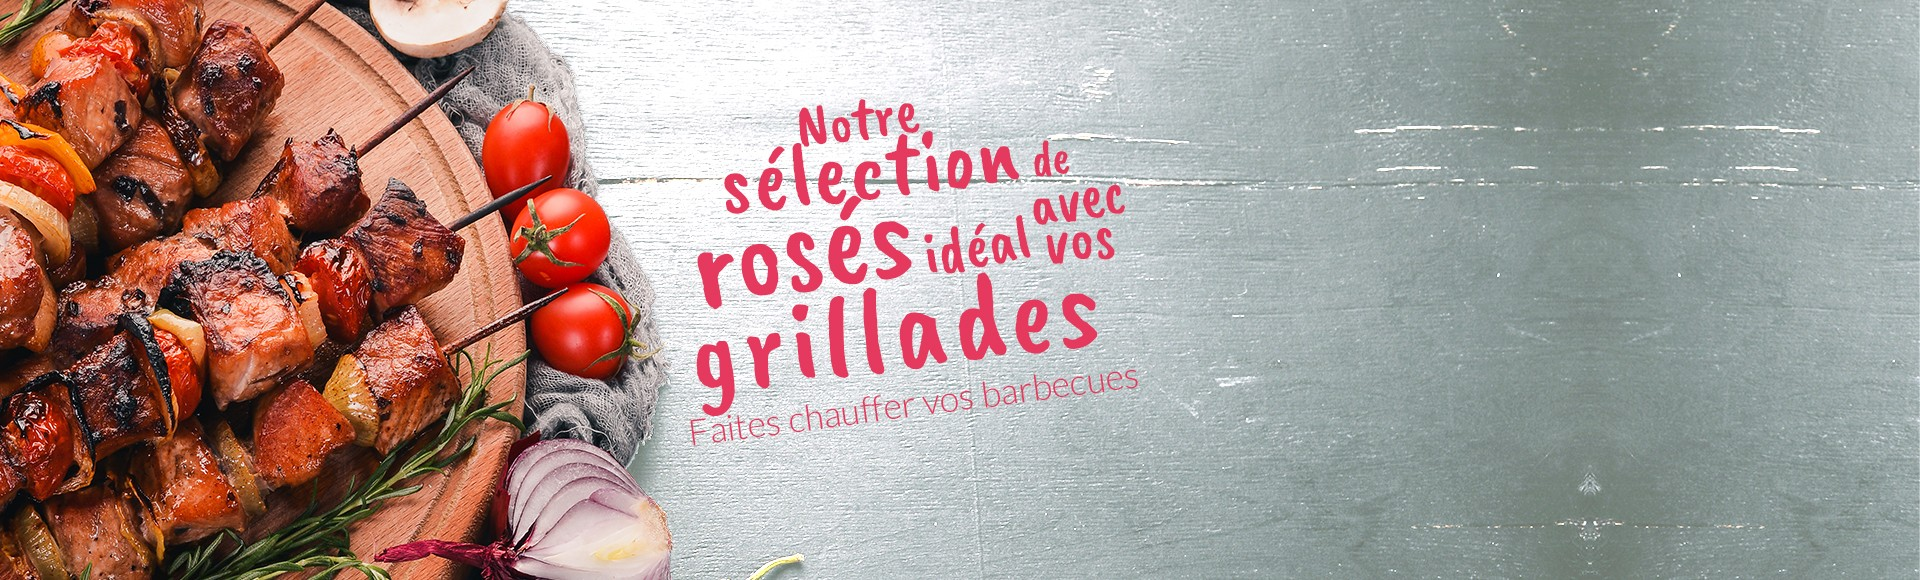 Vos accords grillades